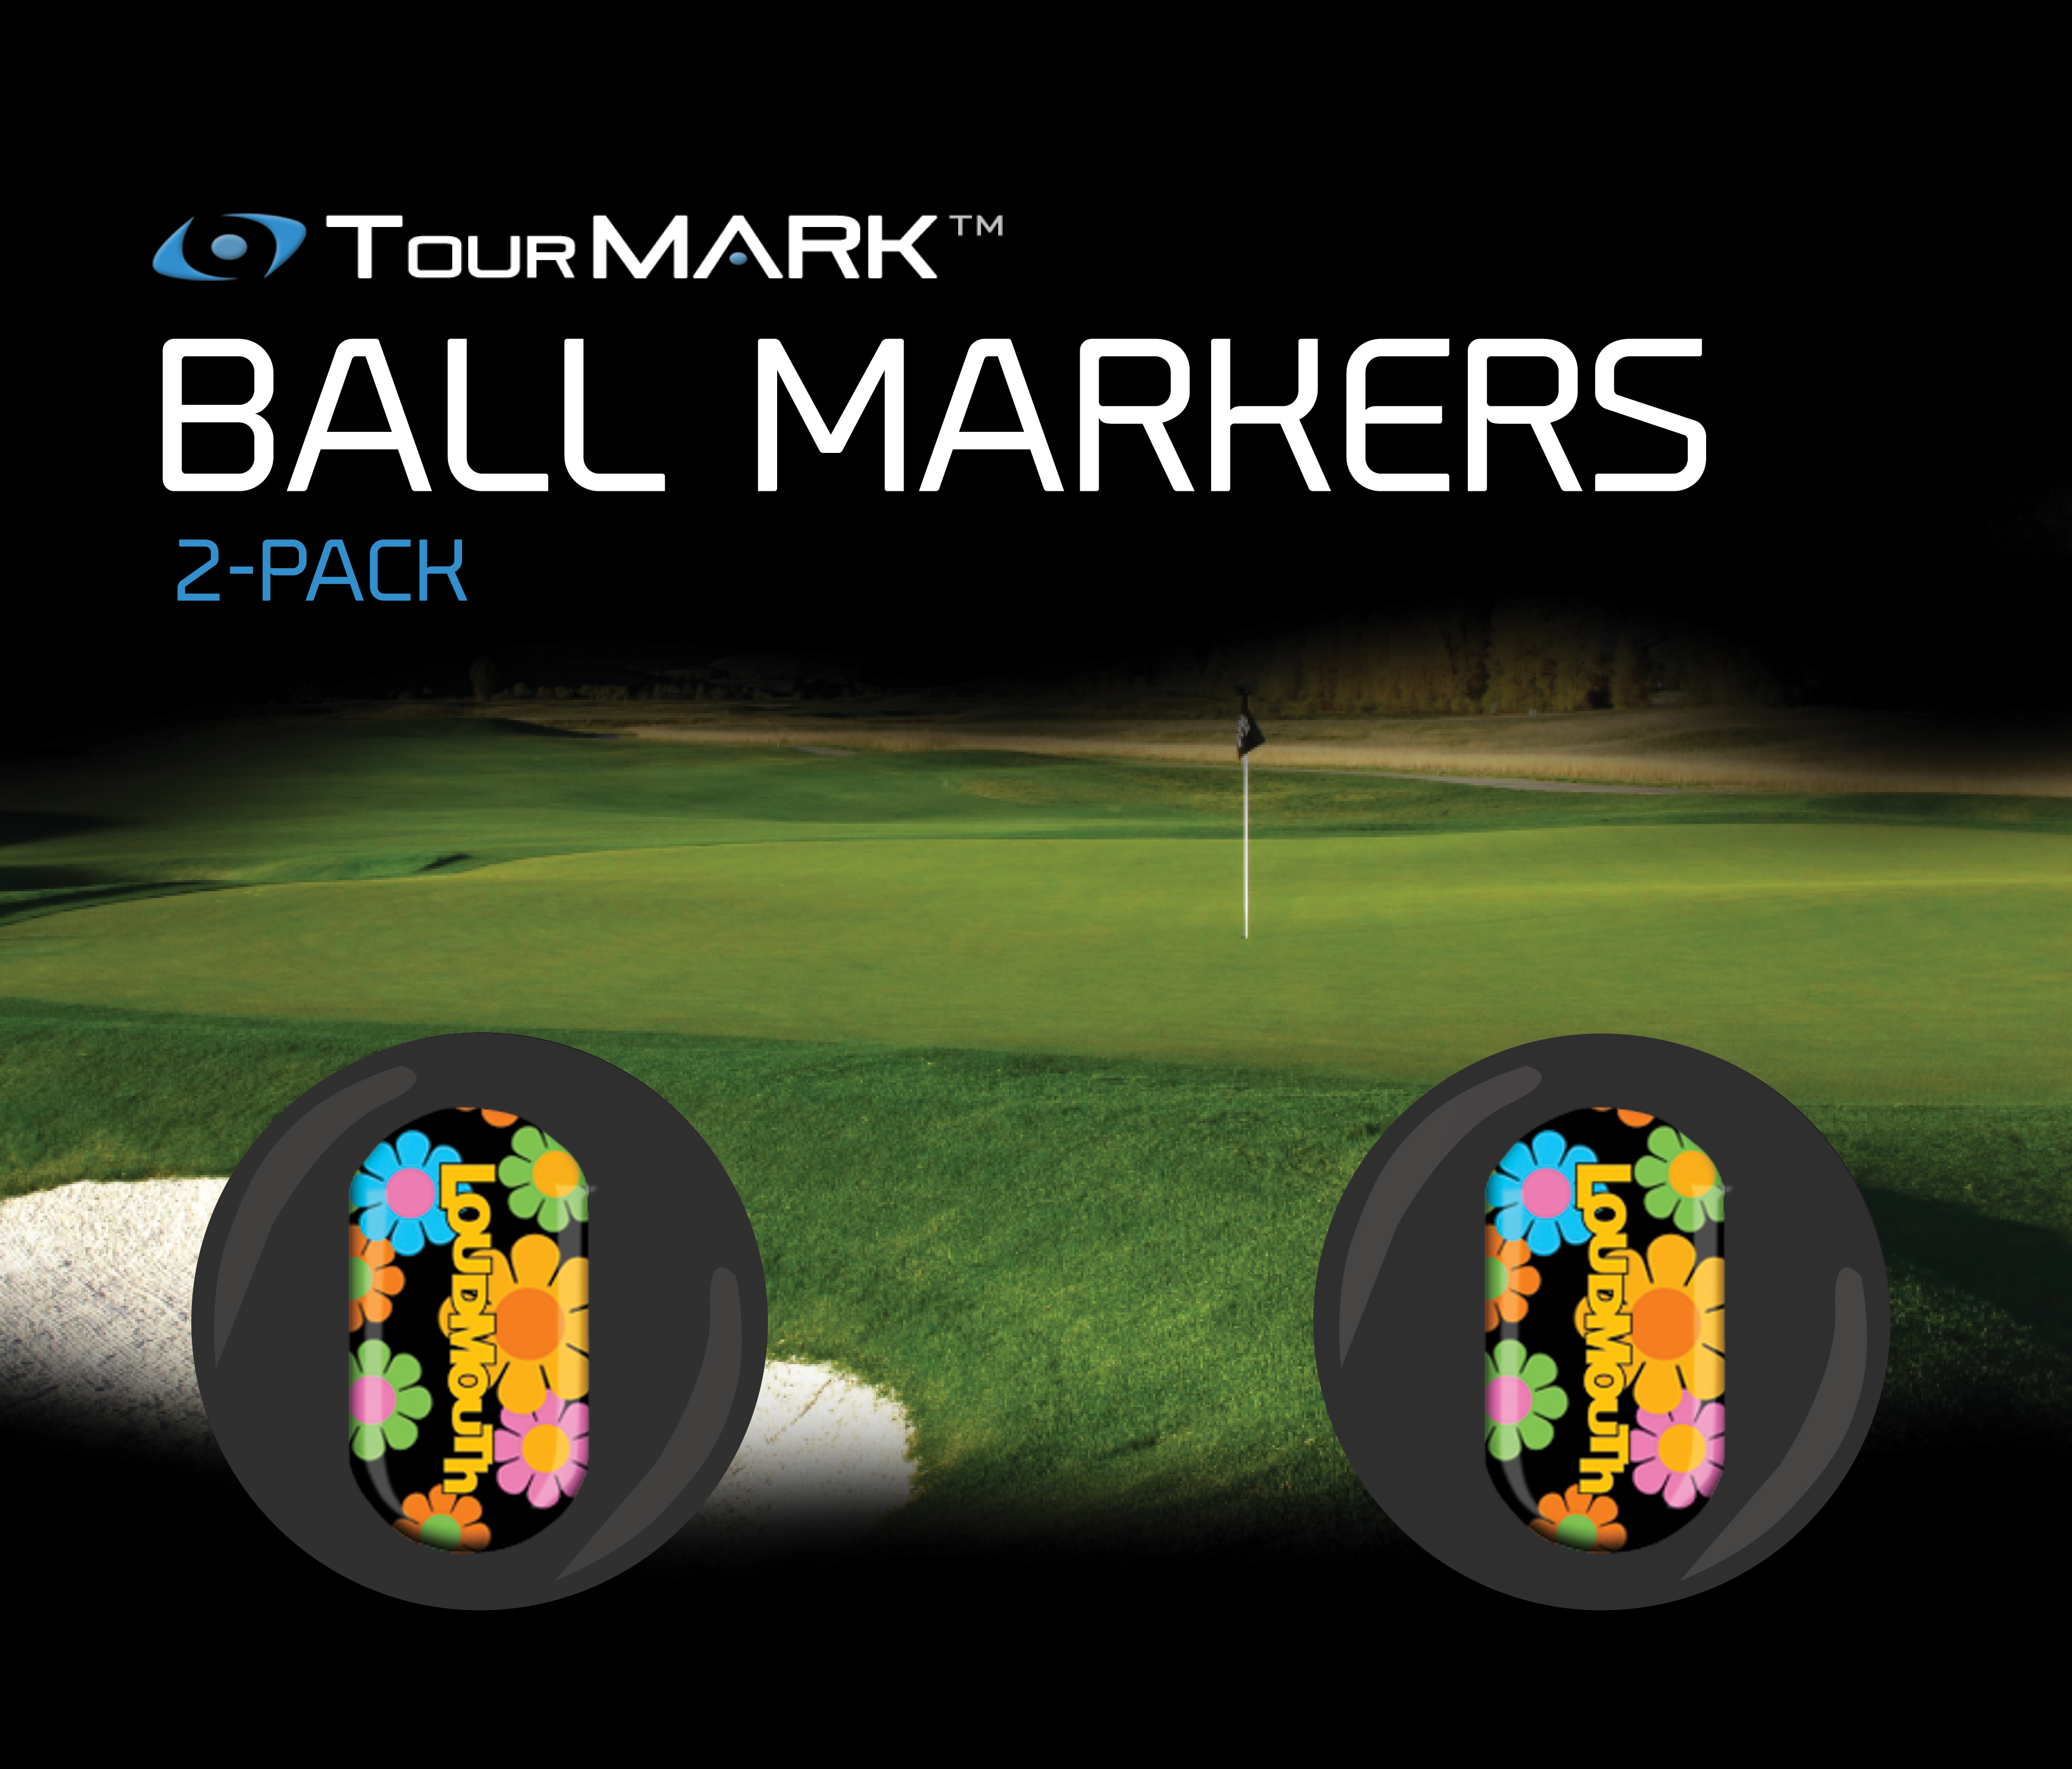 Magic Bus pattern ball markers for TourMARK standard putter grips